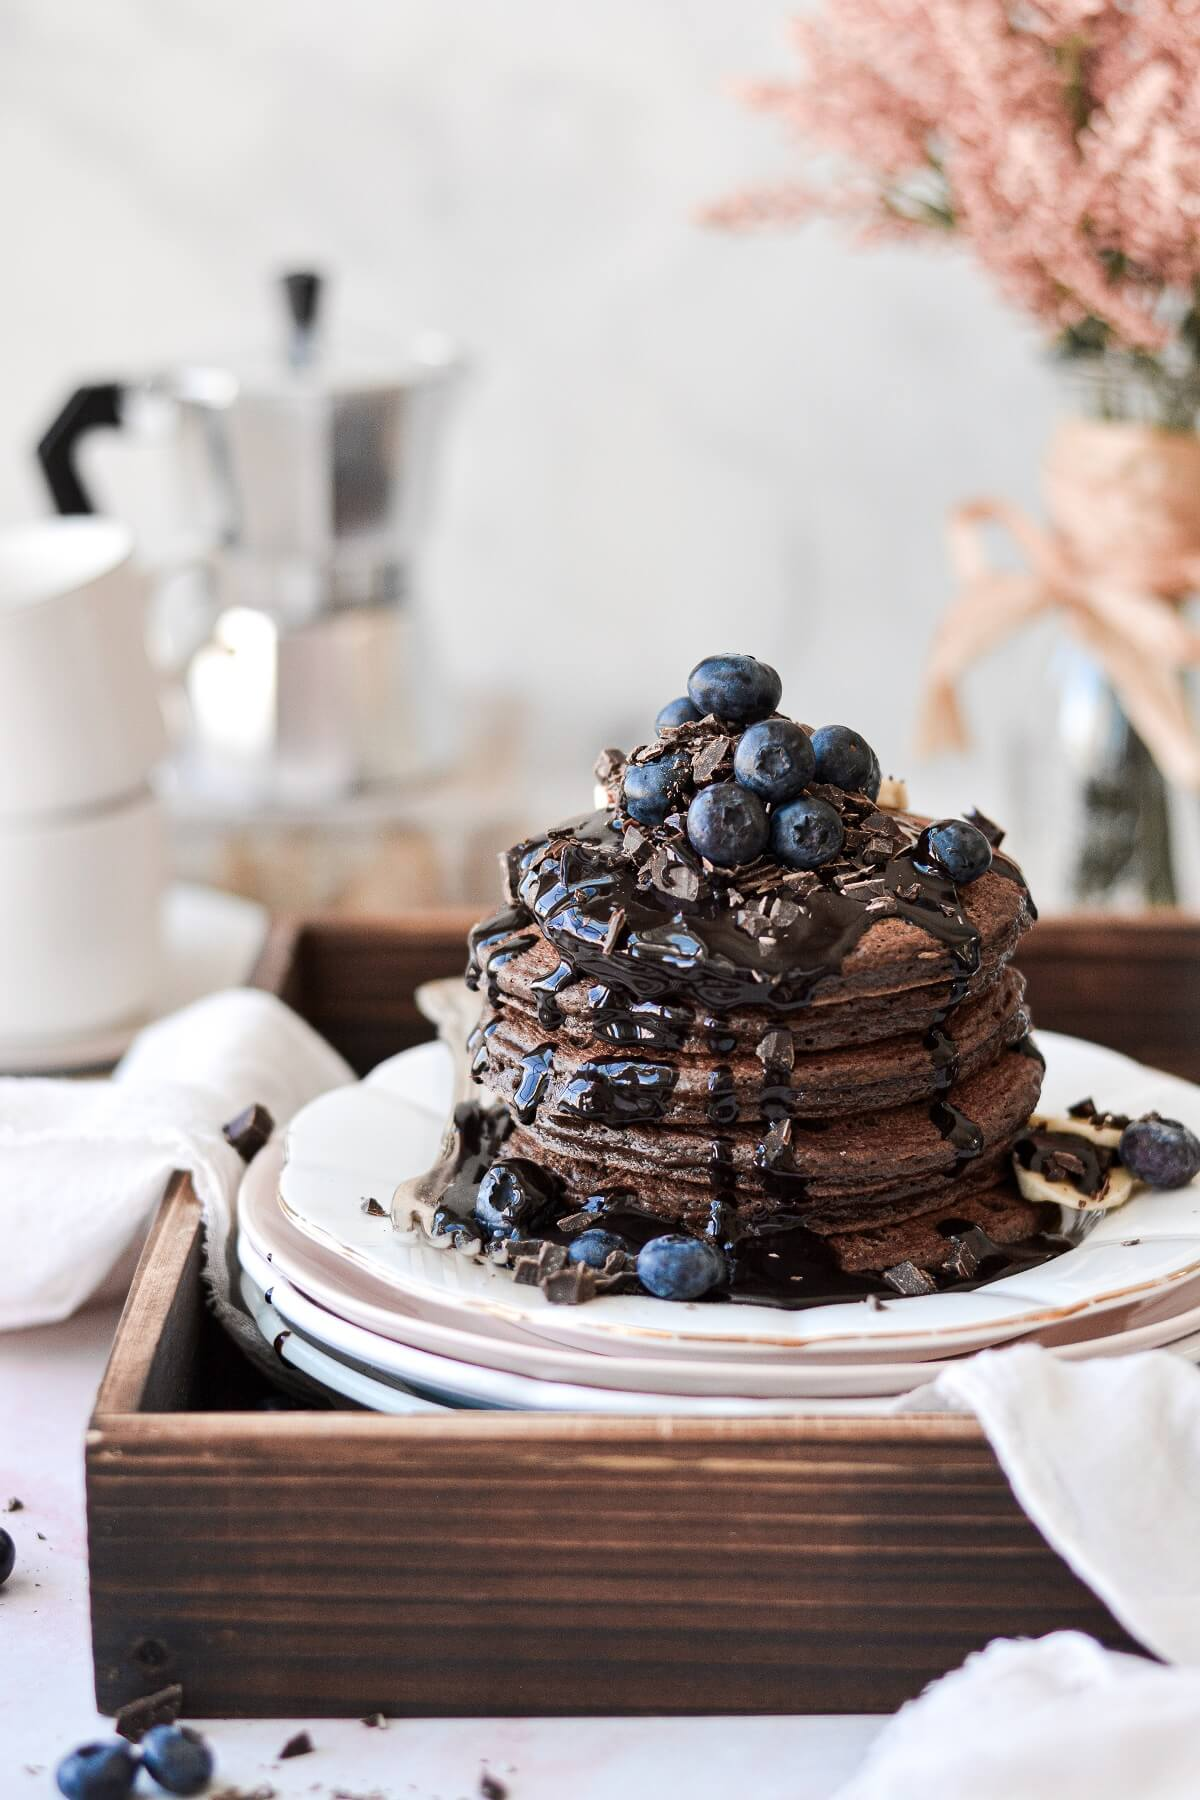 Chocolate pancakes topped with chocolate syrup, chopped chocolate and blueberries.